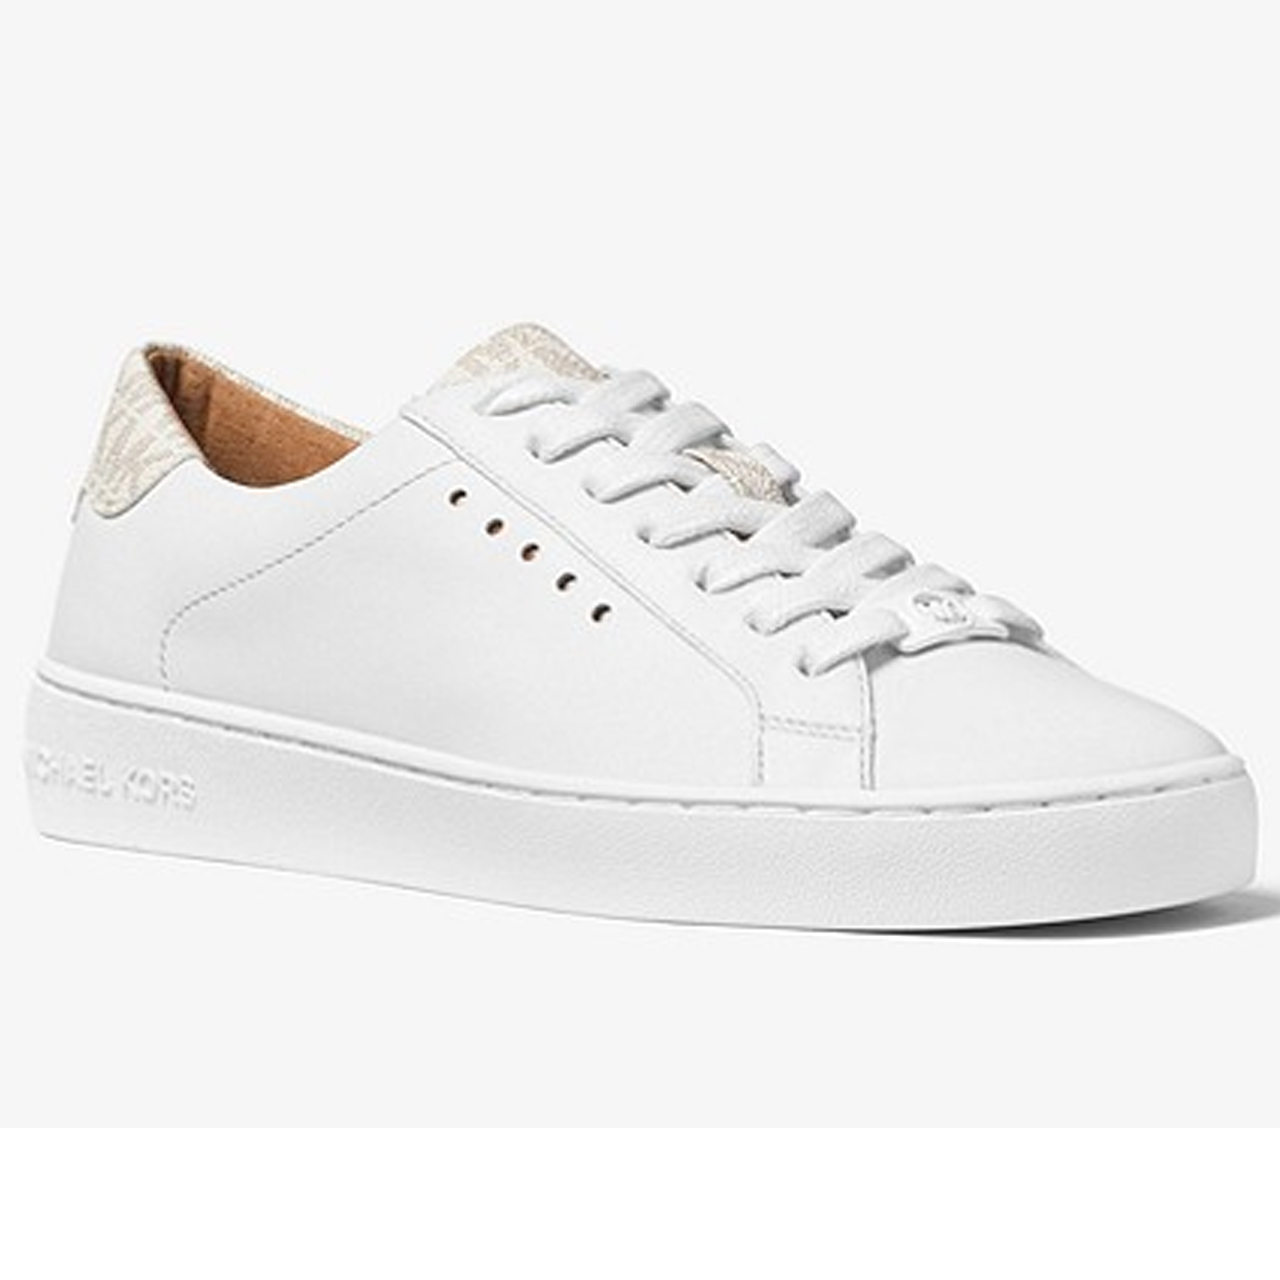 79f07af5480 Michael kors Irving lace up Wit dessin - Sneakers - Schoenen - Irma Mode